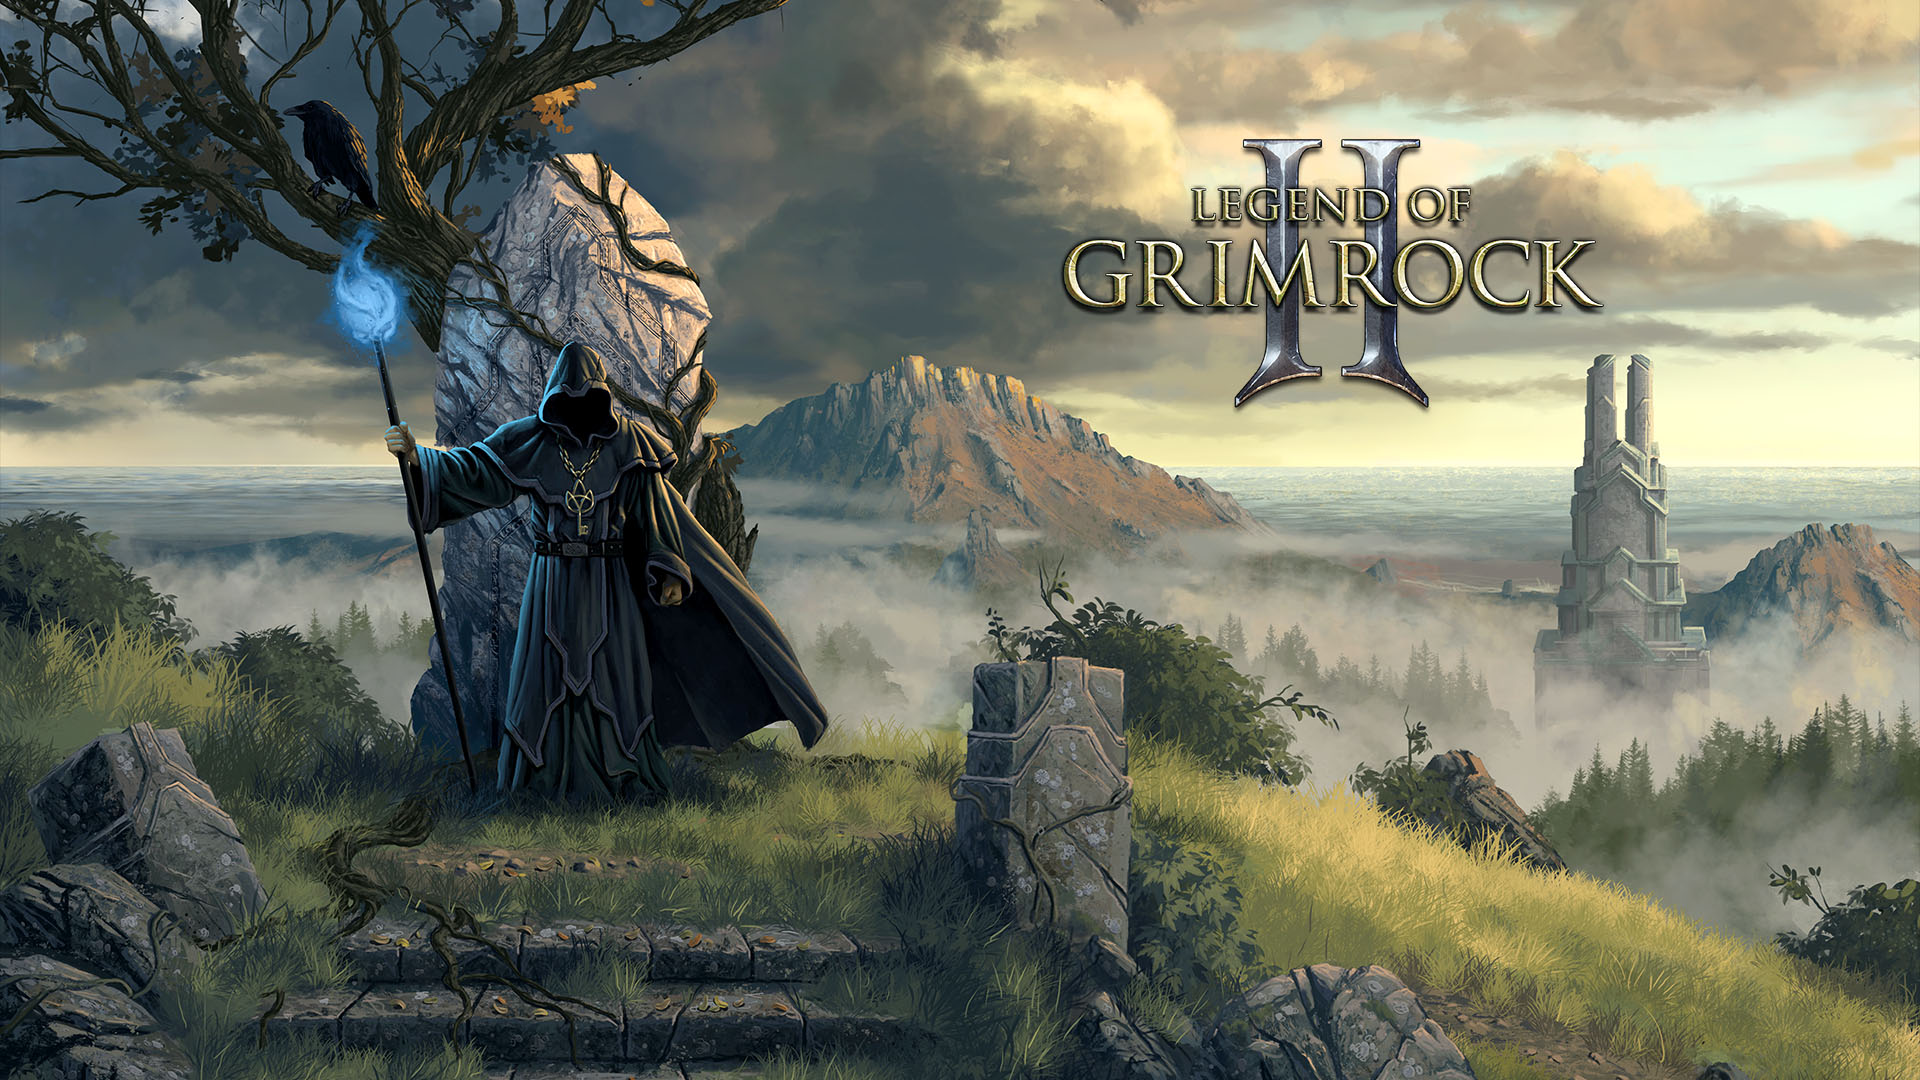 Legend of Grimrock 2 (Steam Key / ROW / Region Free)